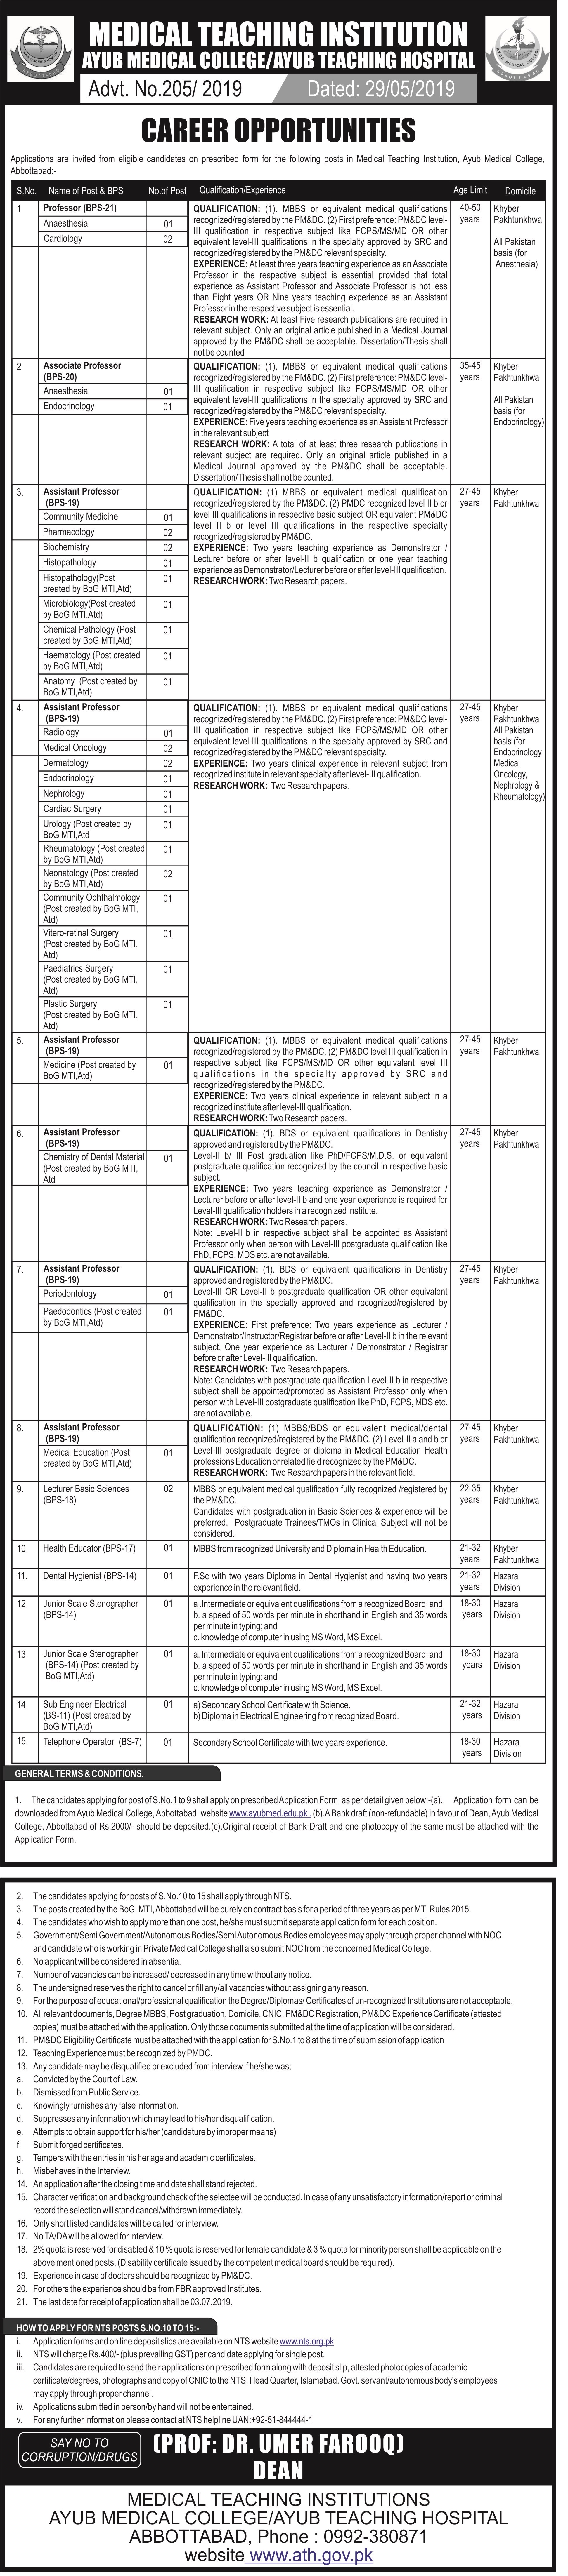 Medical Teaching Institution Ayub Medical College Abbottabad Jobs NTS Test Answer Keys Result